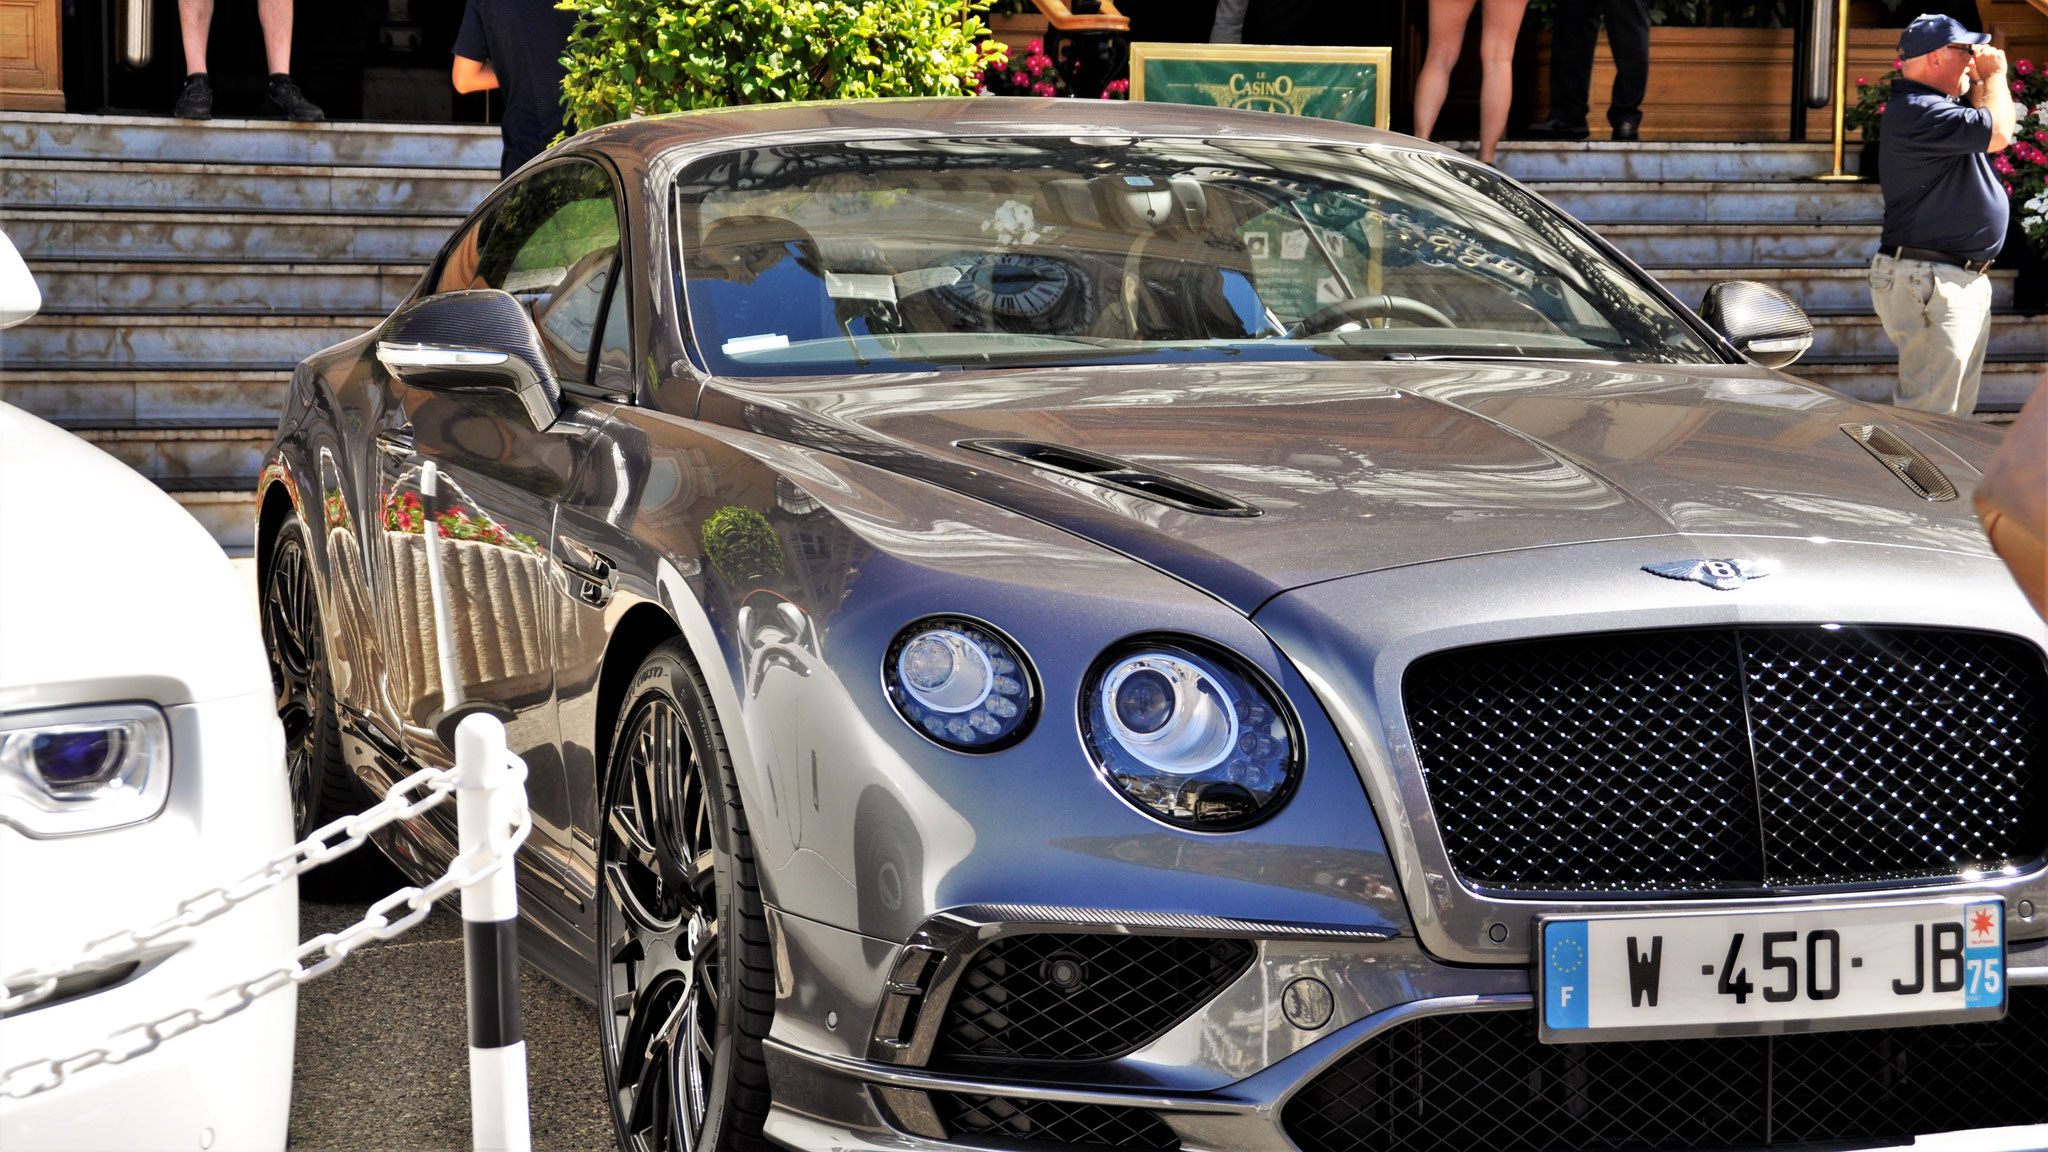 Bentley Continental GT Supersports - W-450-JB-75 (FRA)